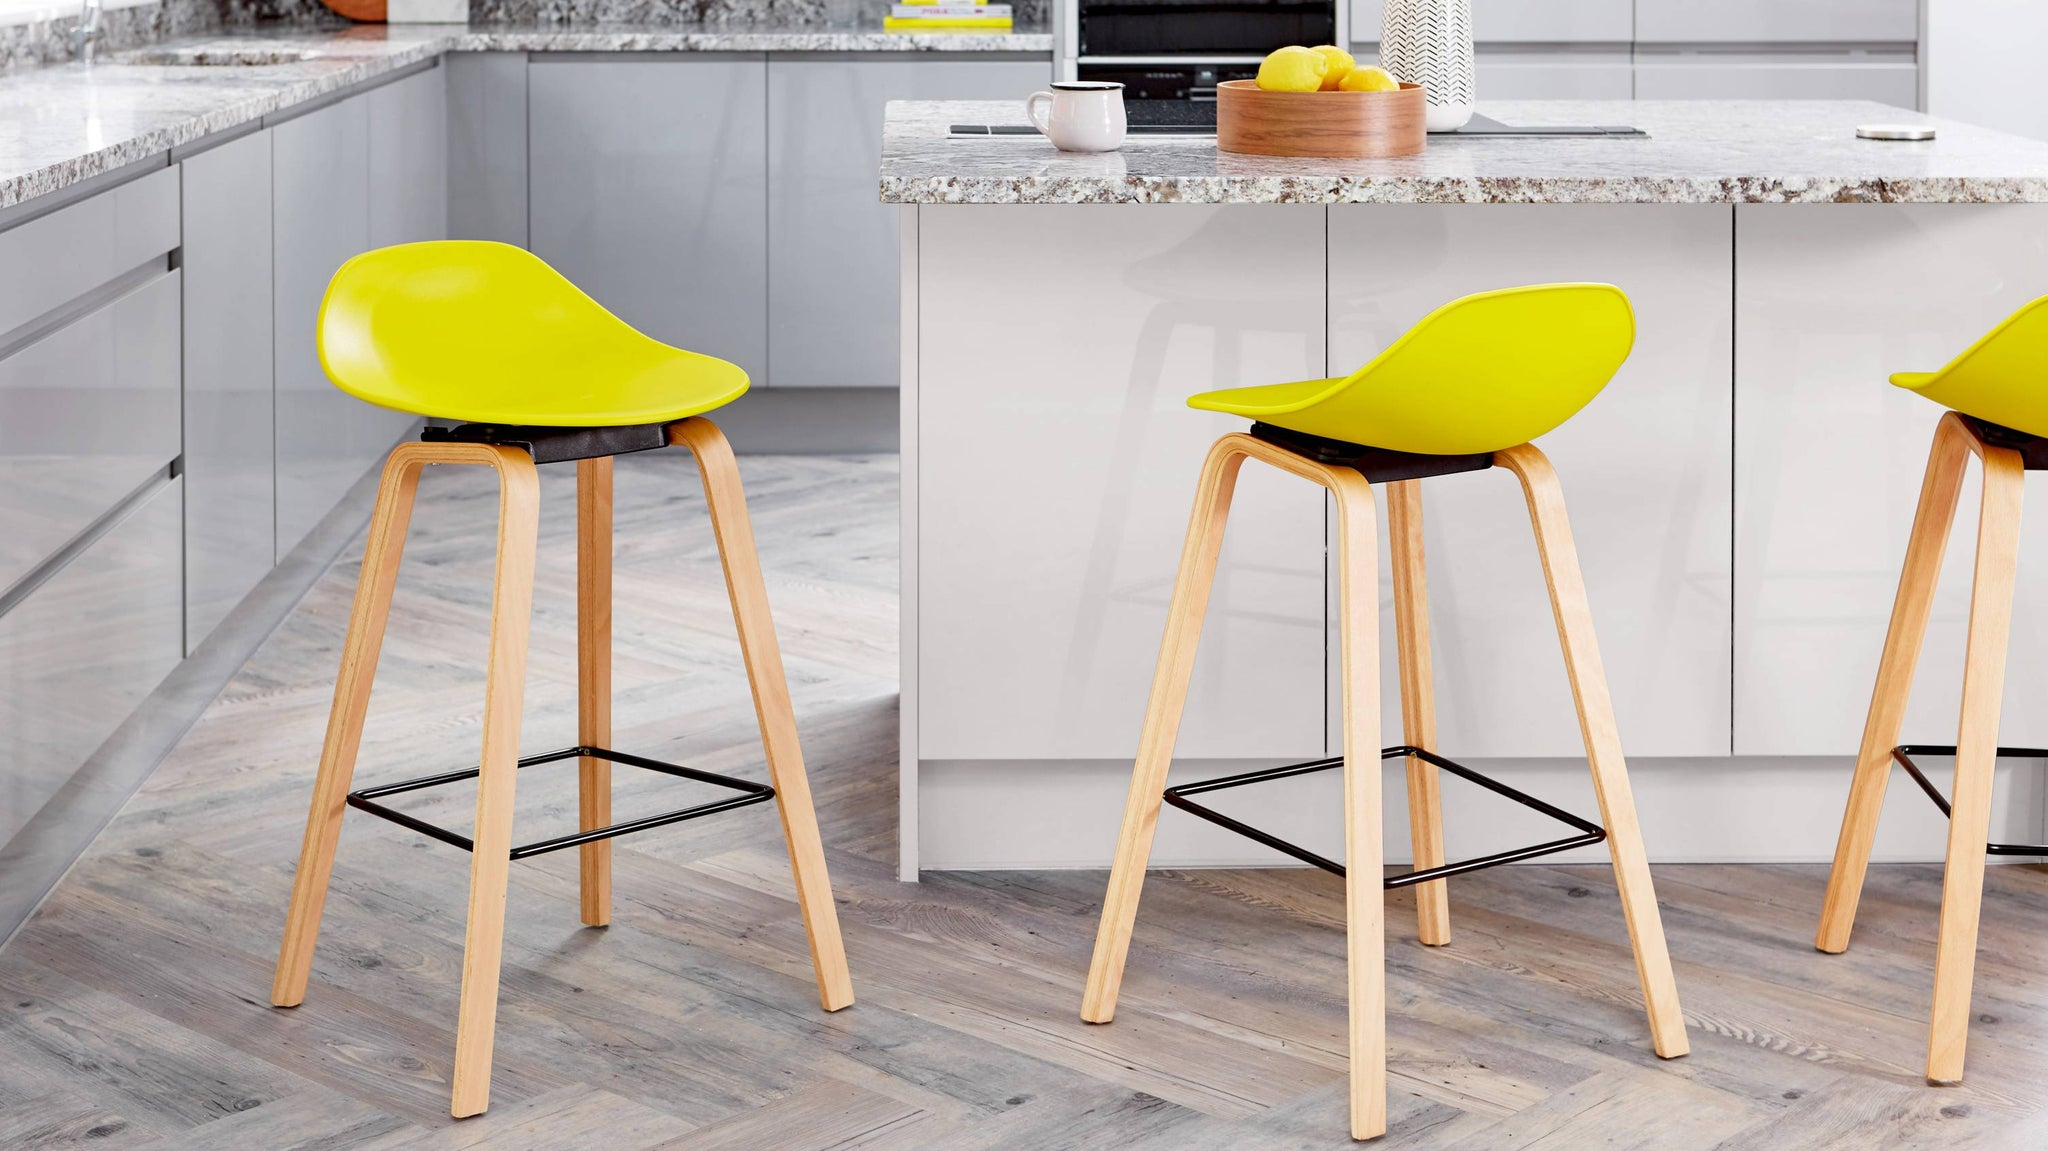 Buy colourful wooden and plastic bar stools